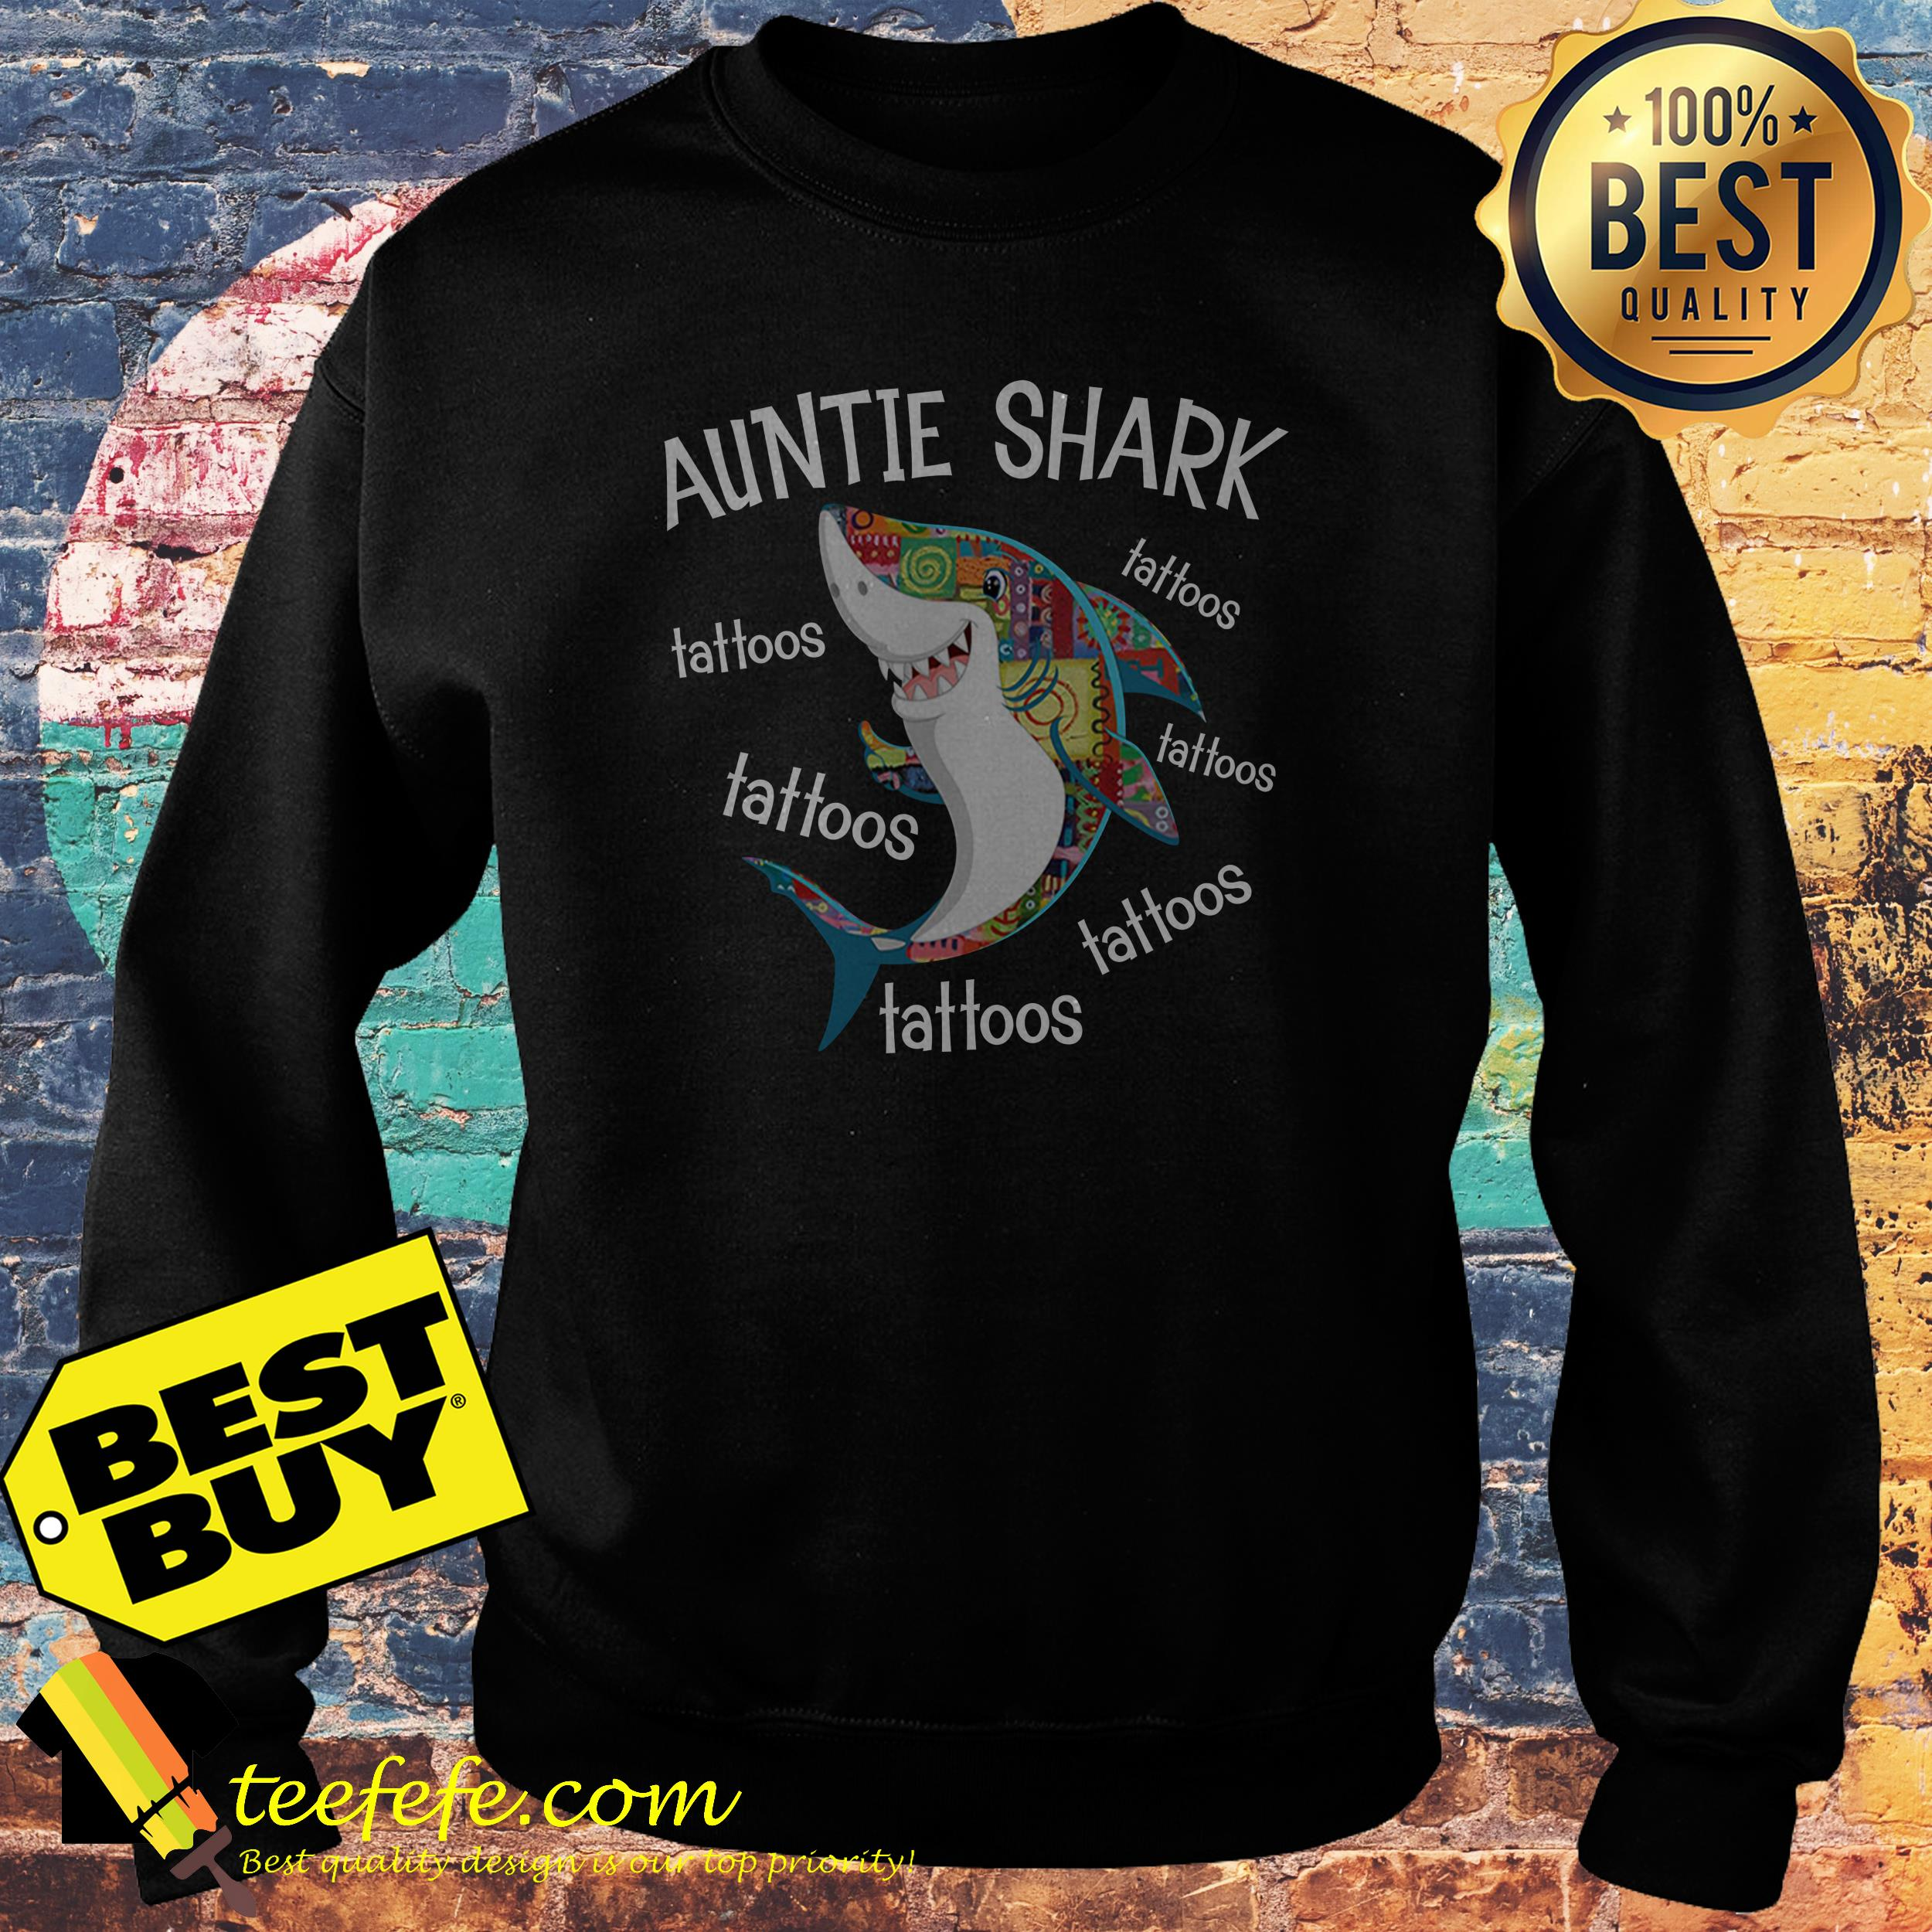 Auntie Shark Tattoos sweatshirt